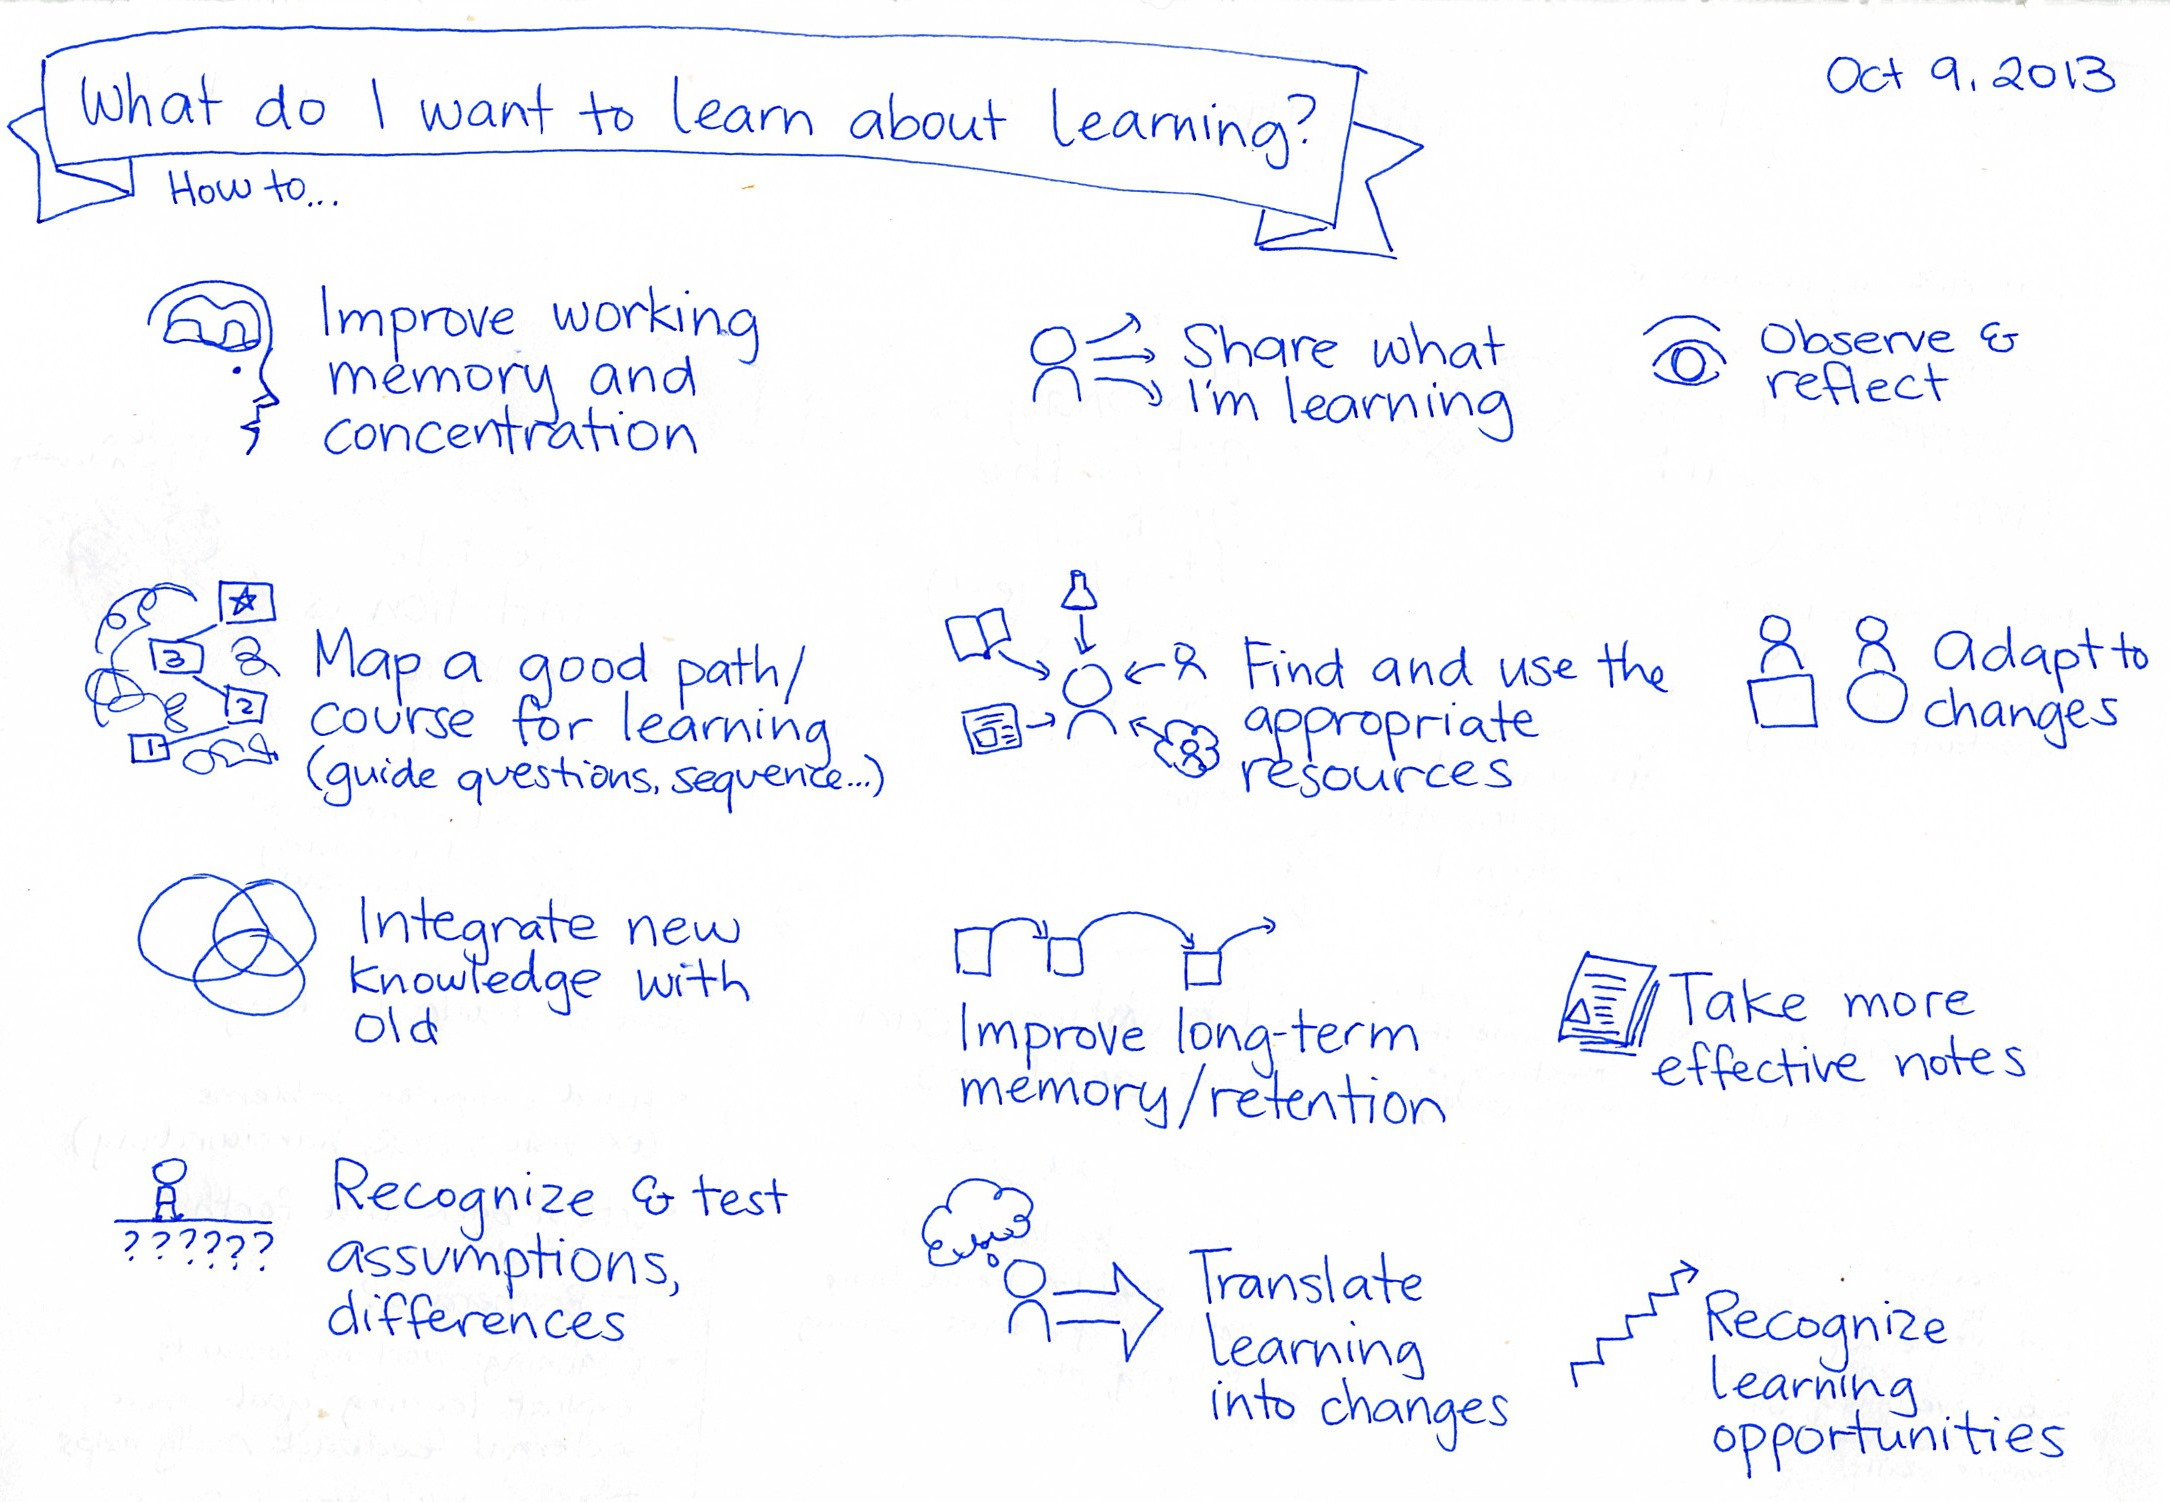 how to say you want to learn more